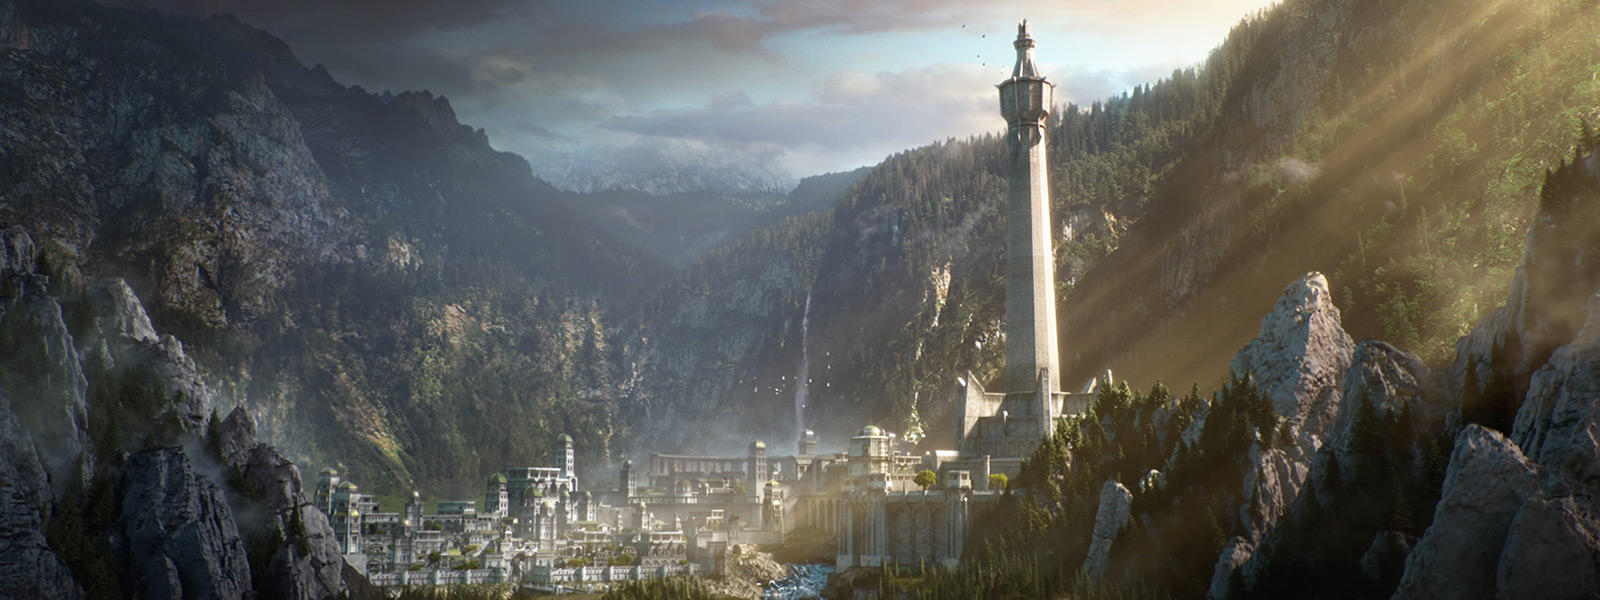 Solen skinner på den hvite marmorbyen Minas Ithil i spillet Middle-earth: Shadow of War